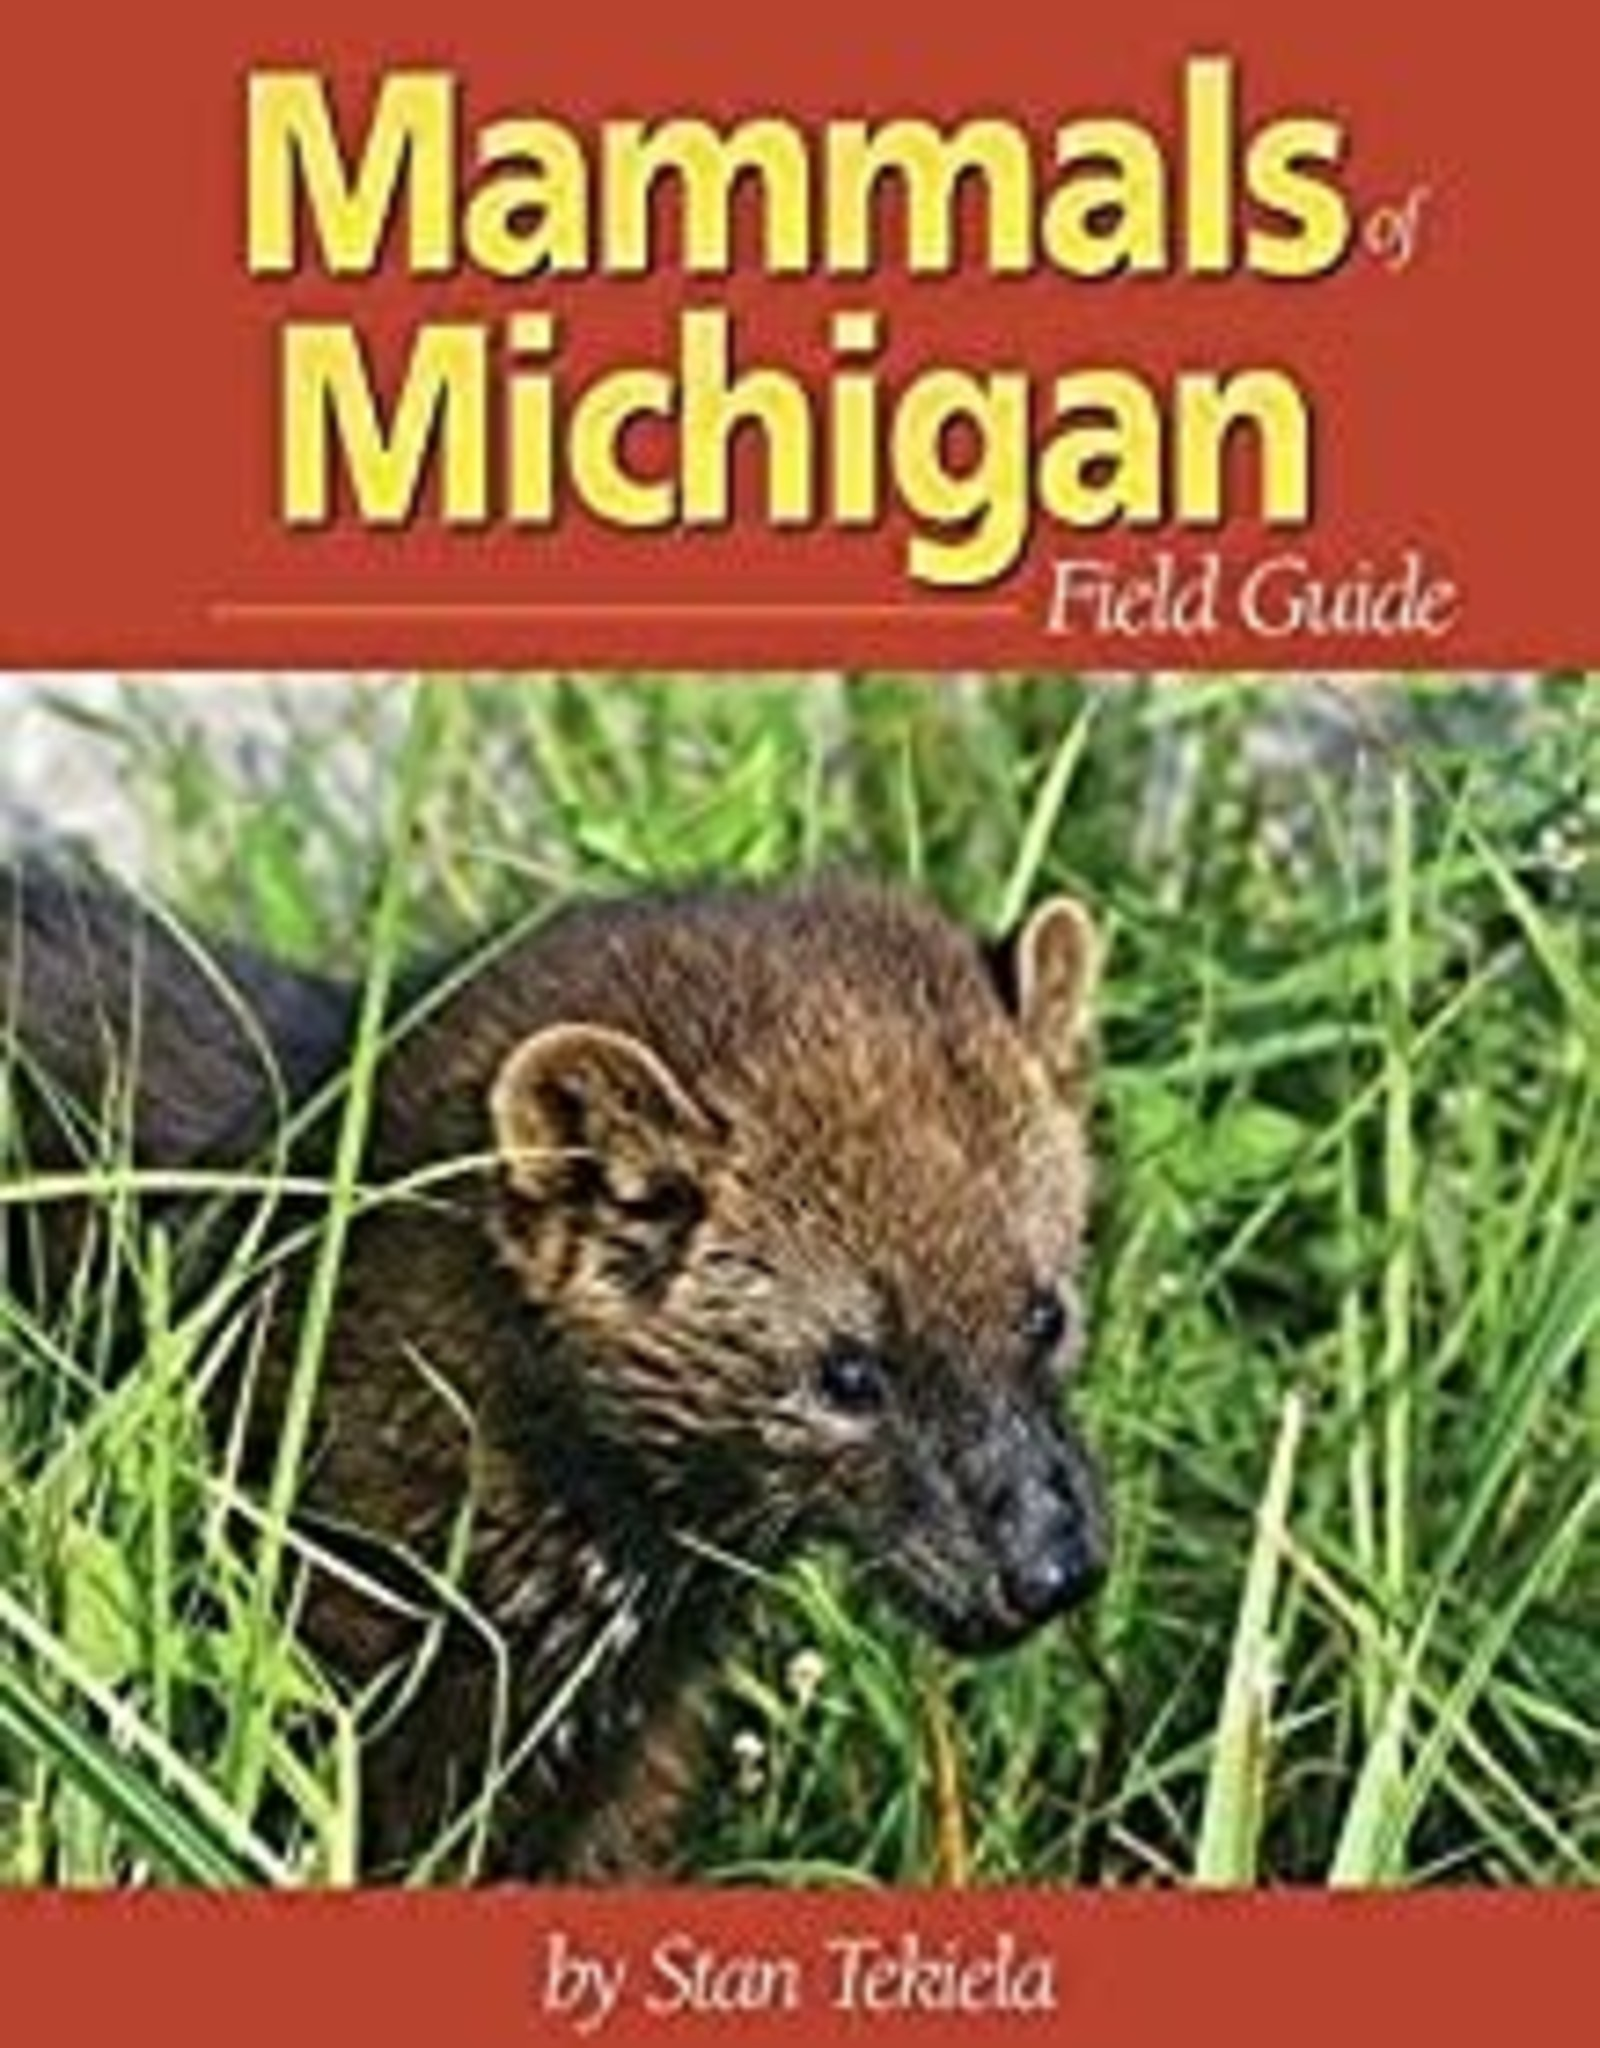 Field Guide Mammals of Michigan